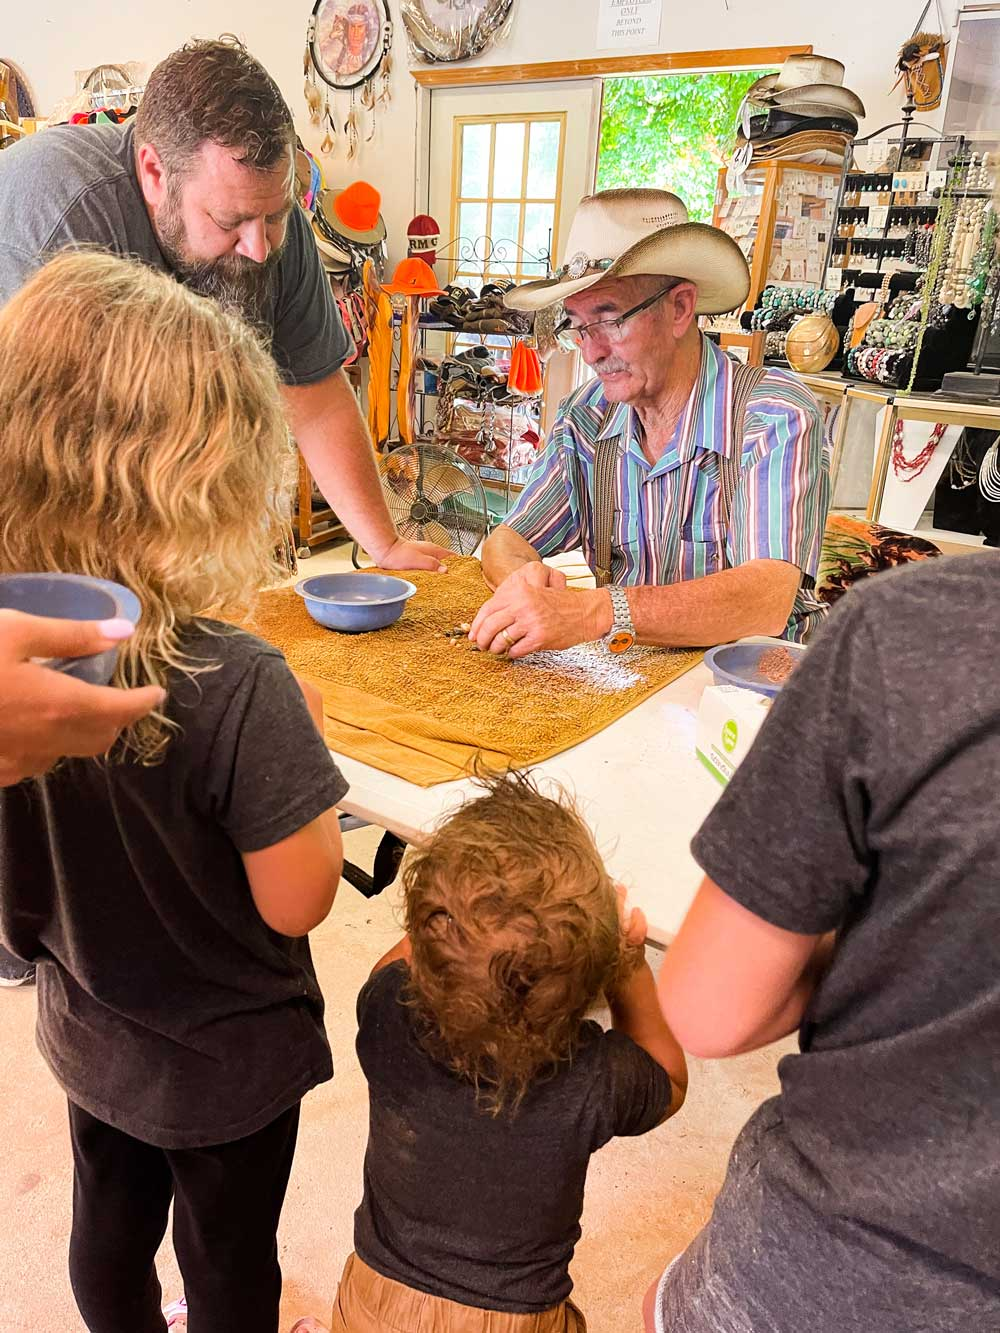 Best Things to Do in Bryson City NC with Kids - Try Gem Mining with the Family   Things to do in Bryson City NC by popular Florida travel blog, Fresh Mommy Blog: image of a dad and his kids looking at gems in a gem shop.